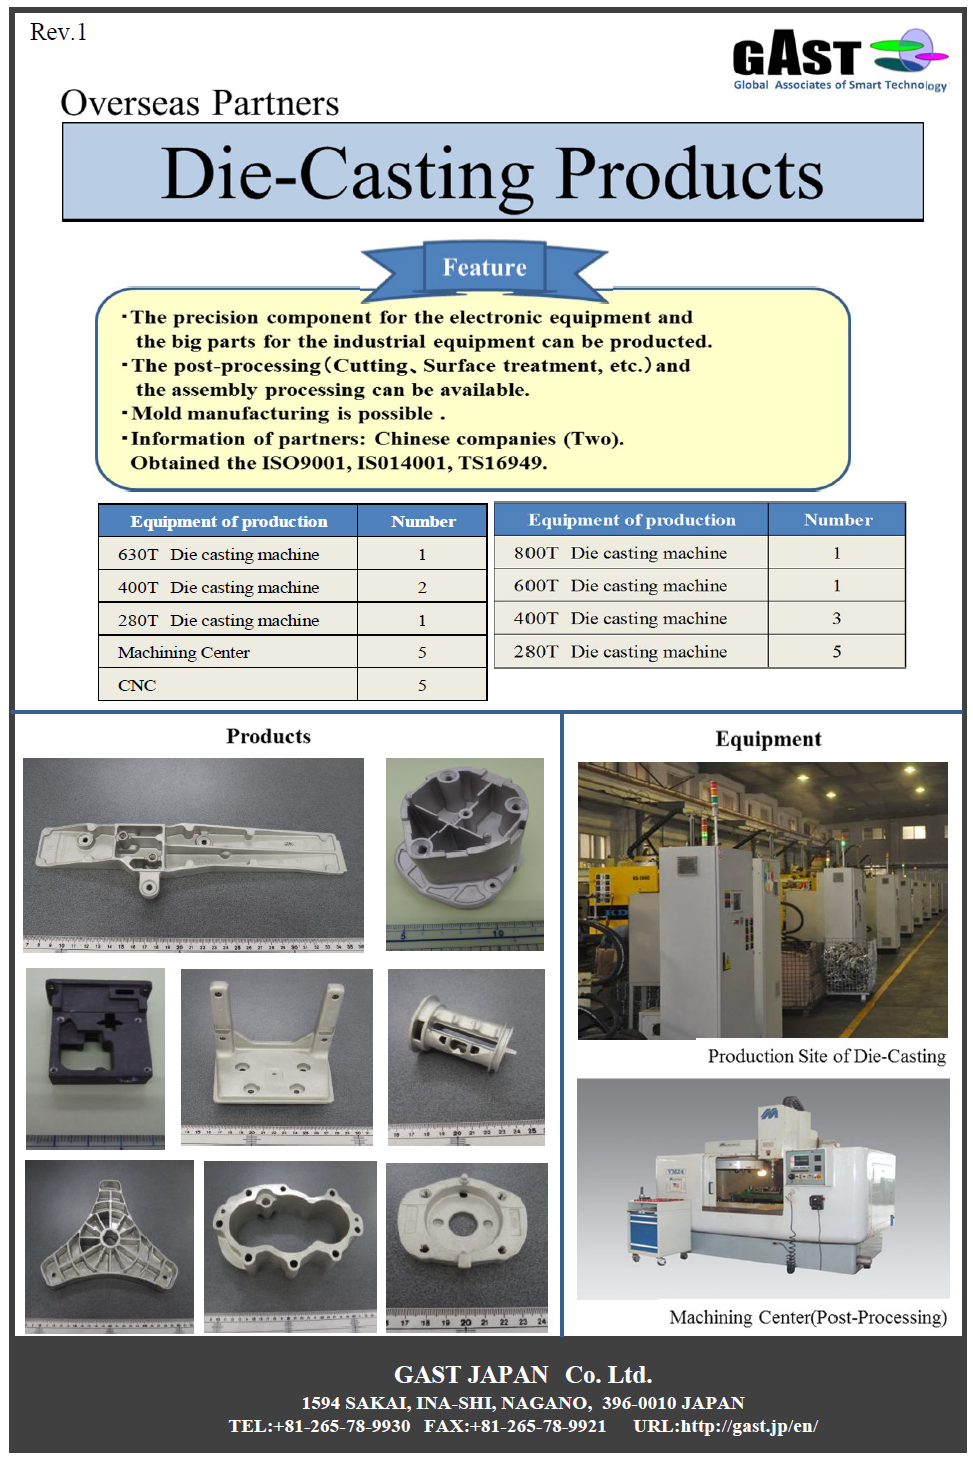 Die-Casting Products.png